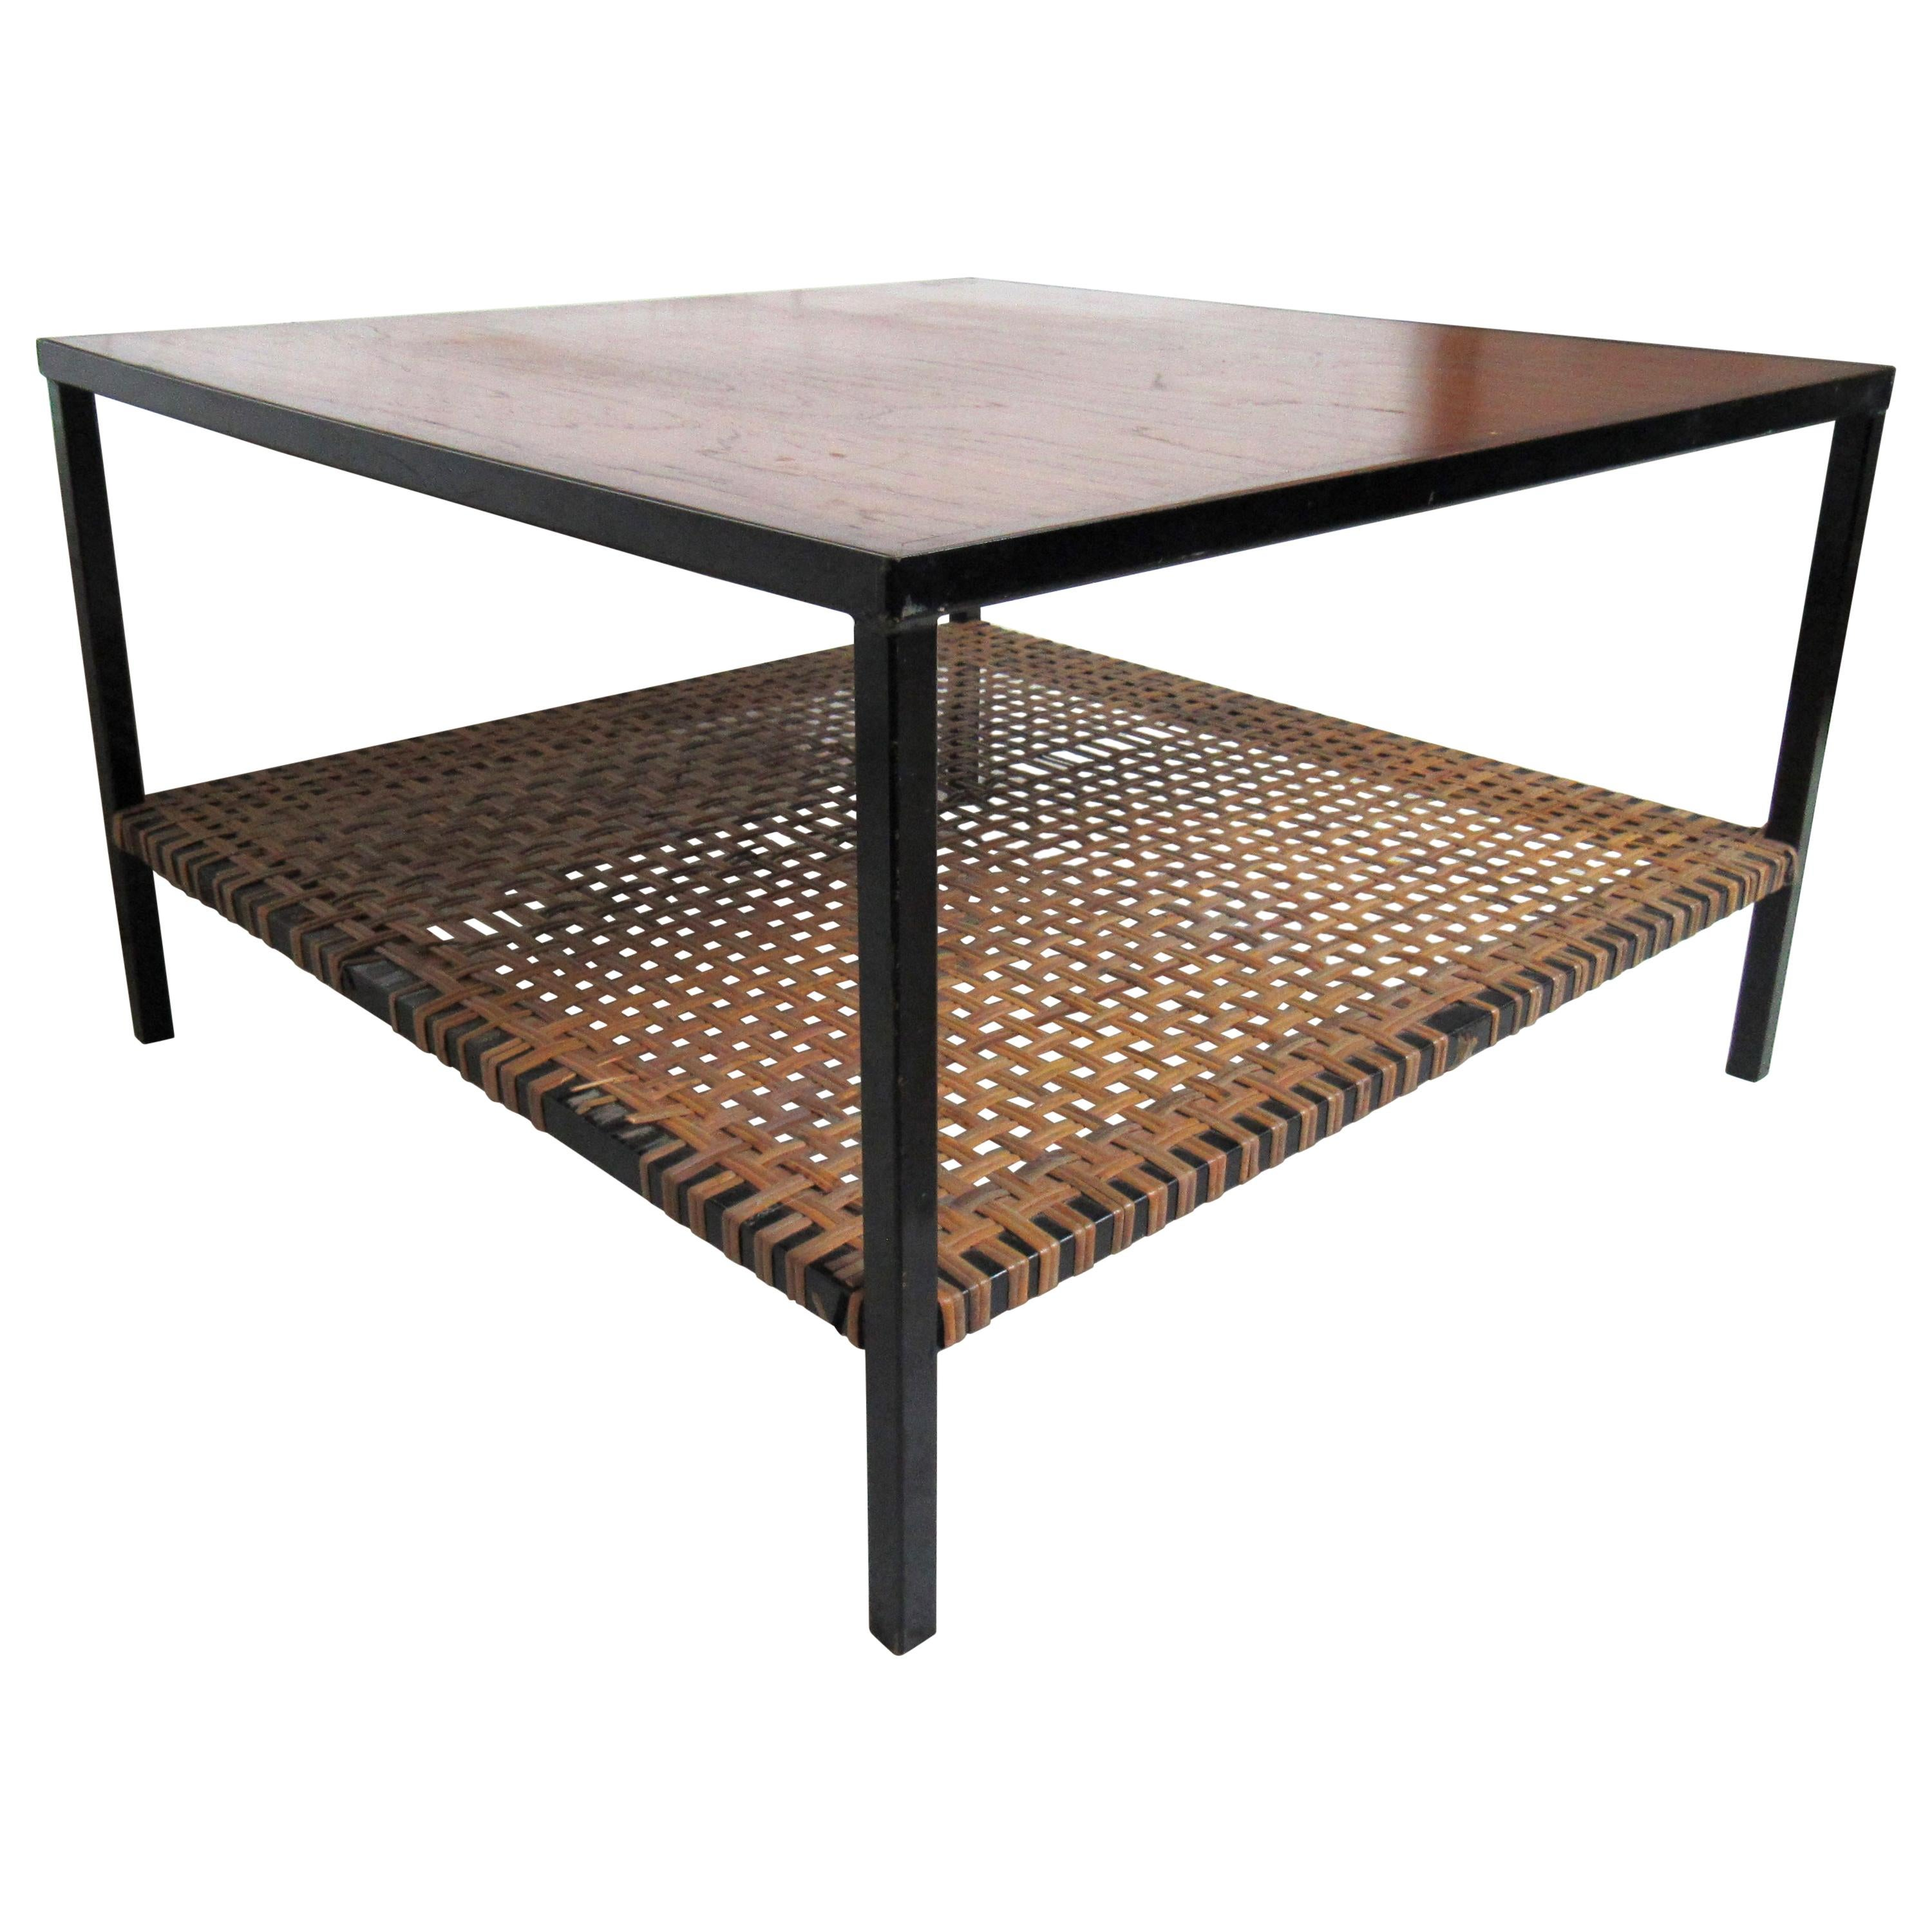 Vintage Industrial Square Coffee Table